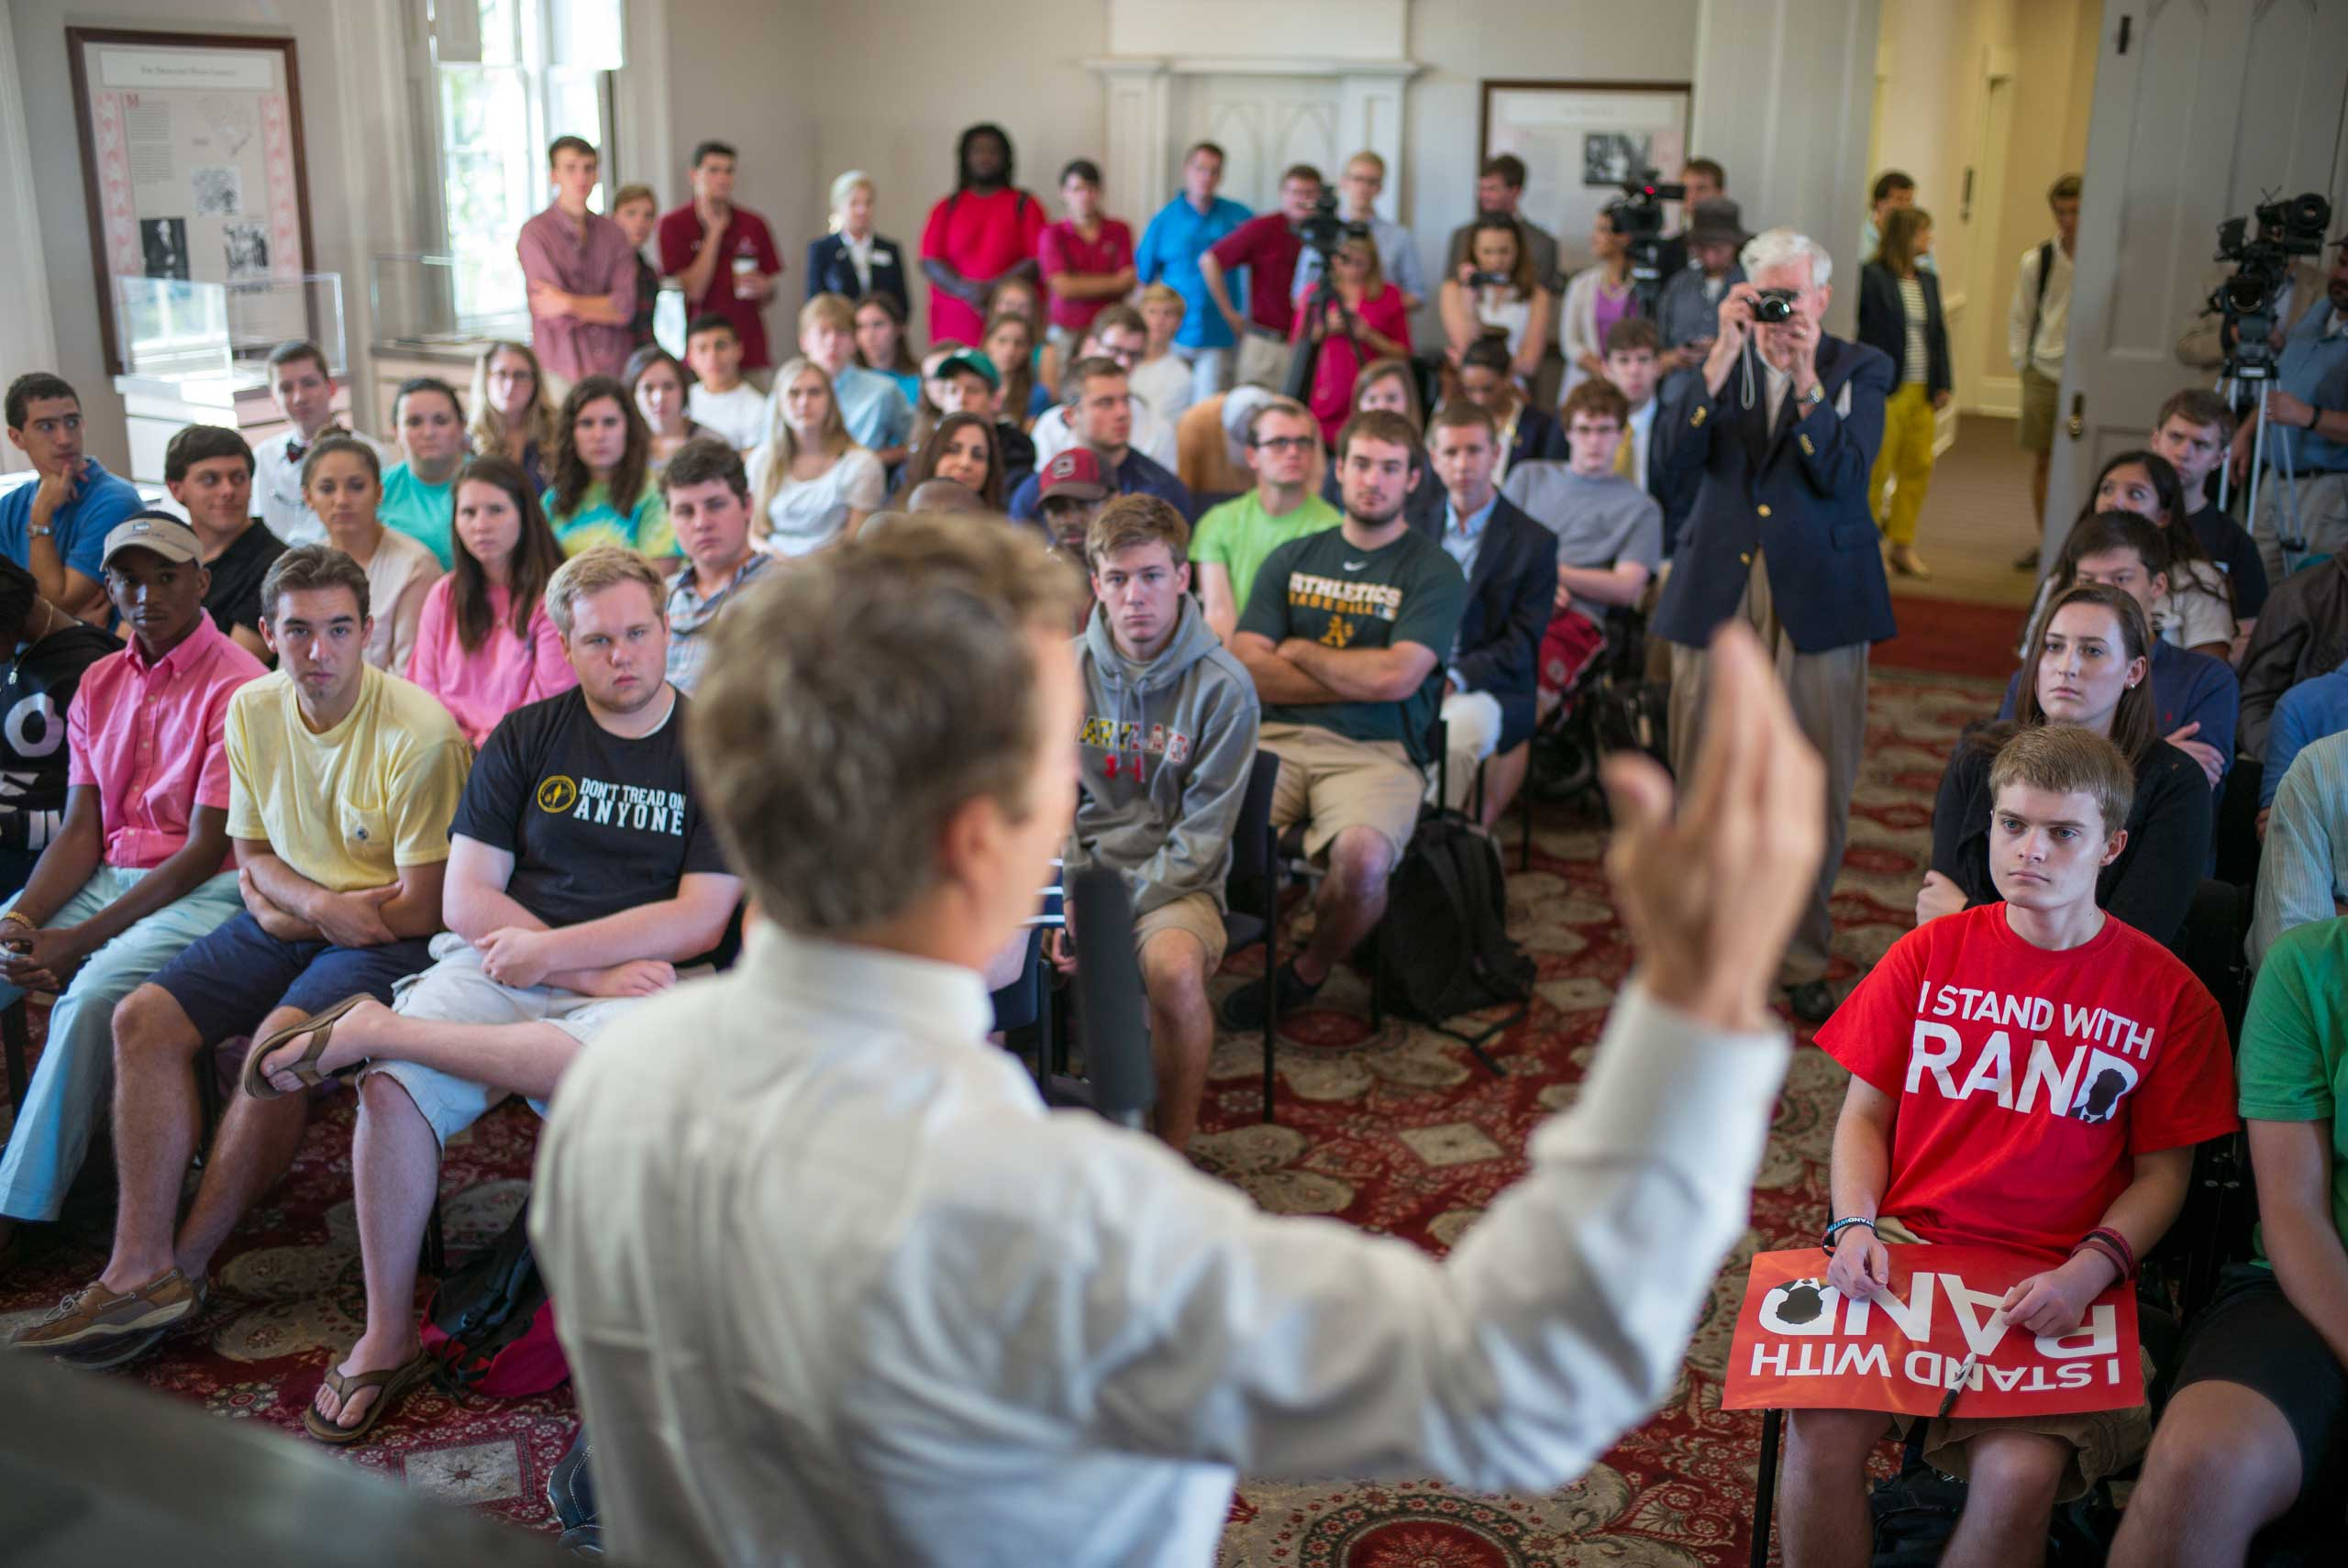 Senator Rand Paul talks with students at the University of South Carolina in Columbia, S.C. on Sept. 30th, 2014.